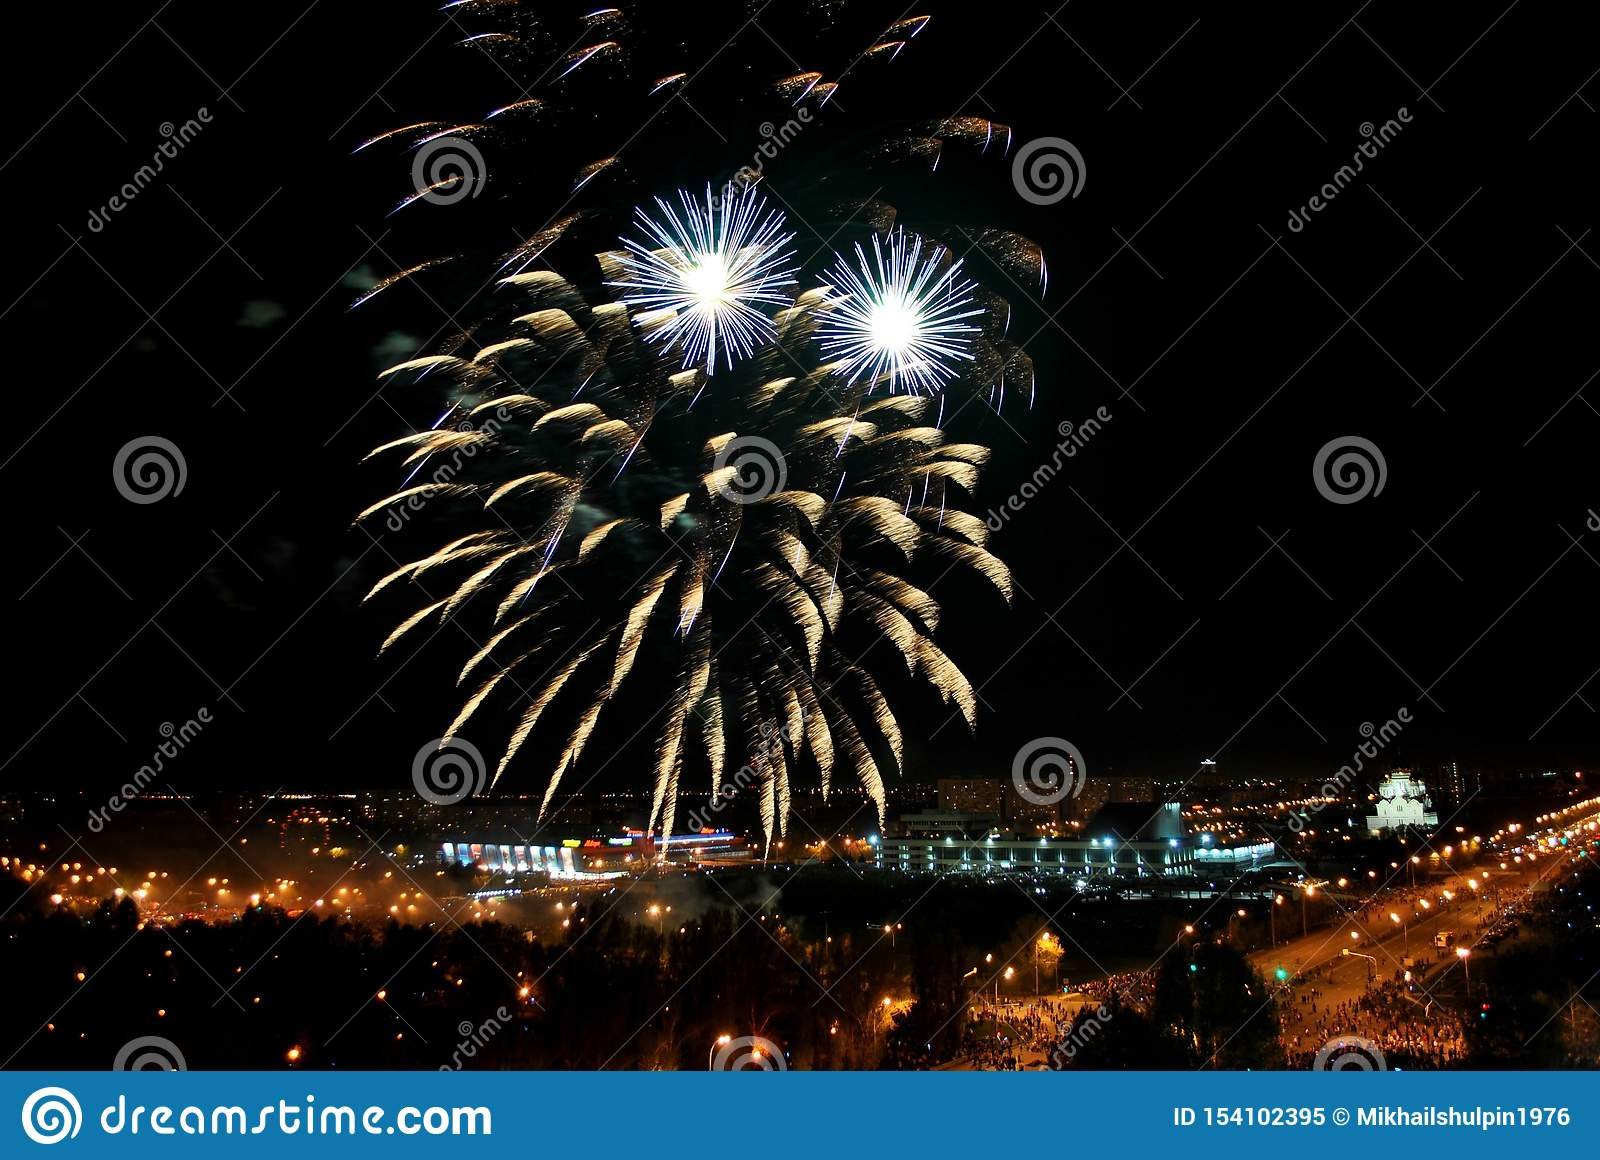 Fireworks in the city of Togliatti in honor of the celebration of the 74th anniversary of the end of the Great Patriotic War.